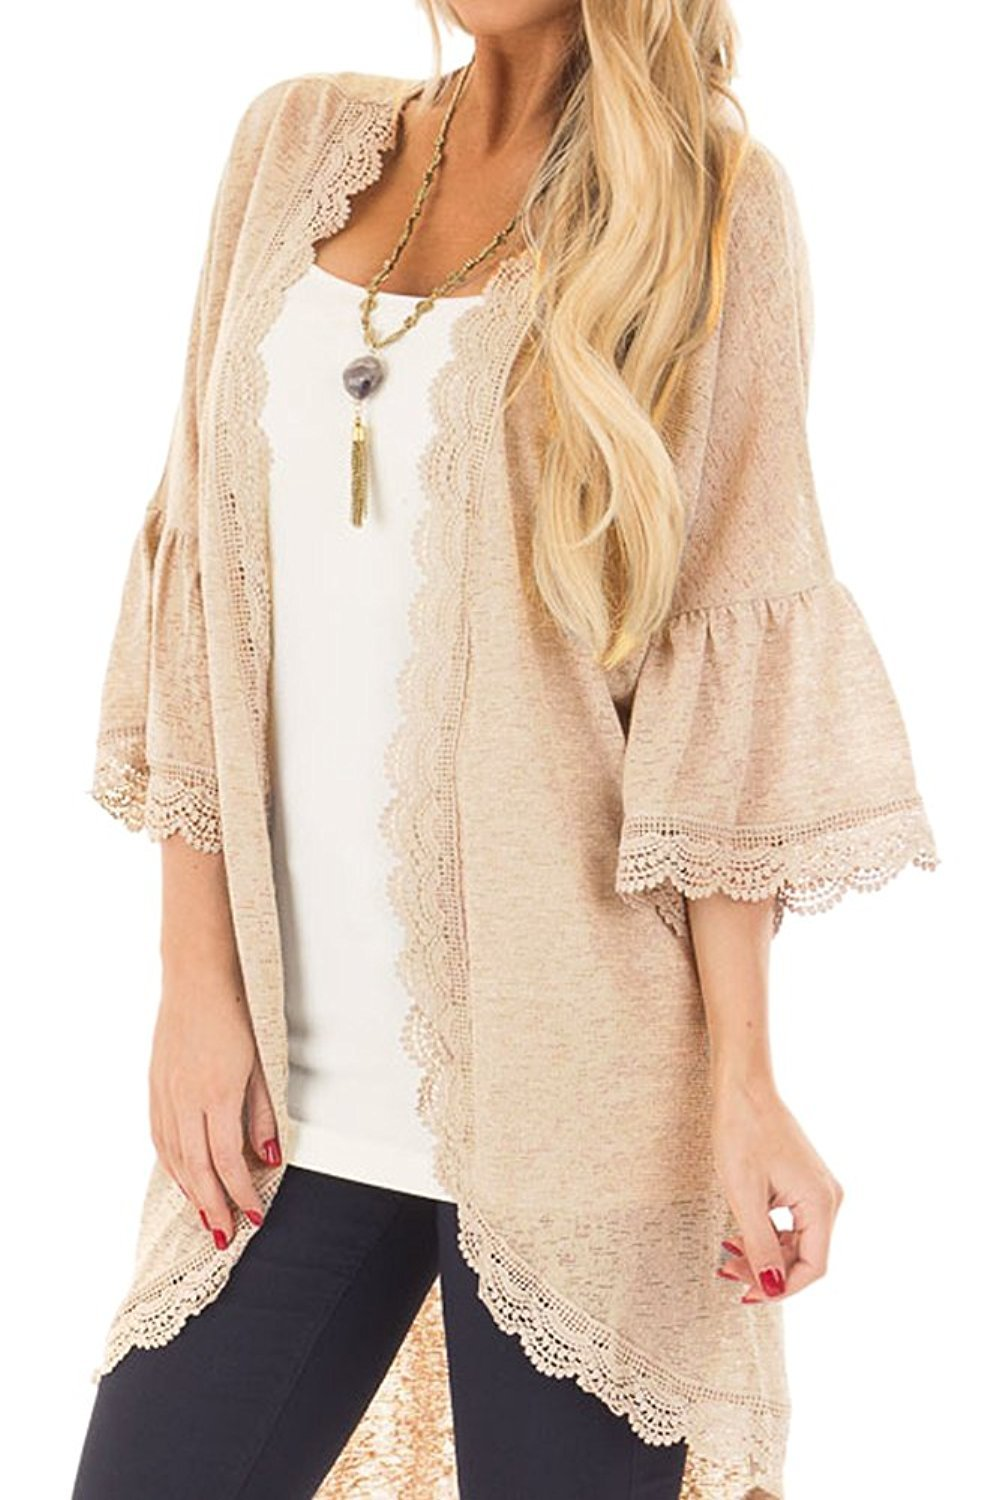 Forsix Women's Lace Detail 3/4 Loose Ruffle Bell Sleeve High Low Kimono Cardigan Cover up (Light Orange, L)